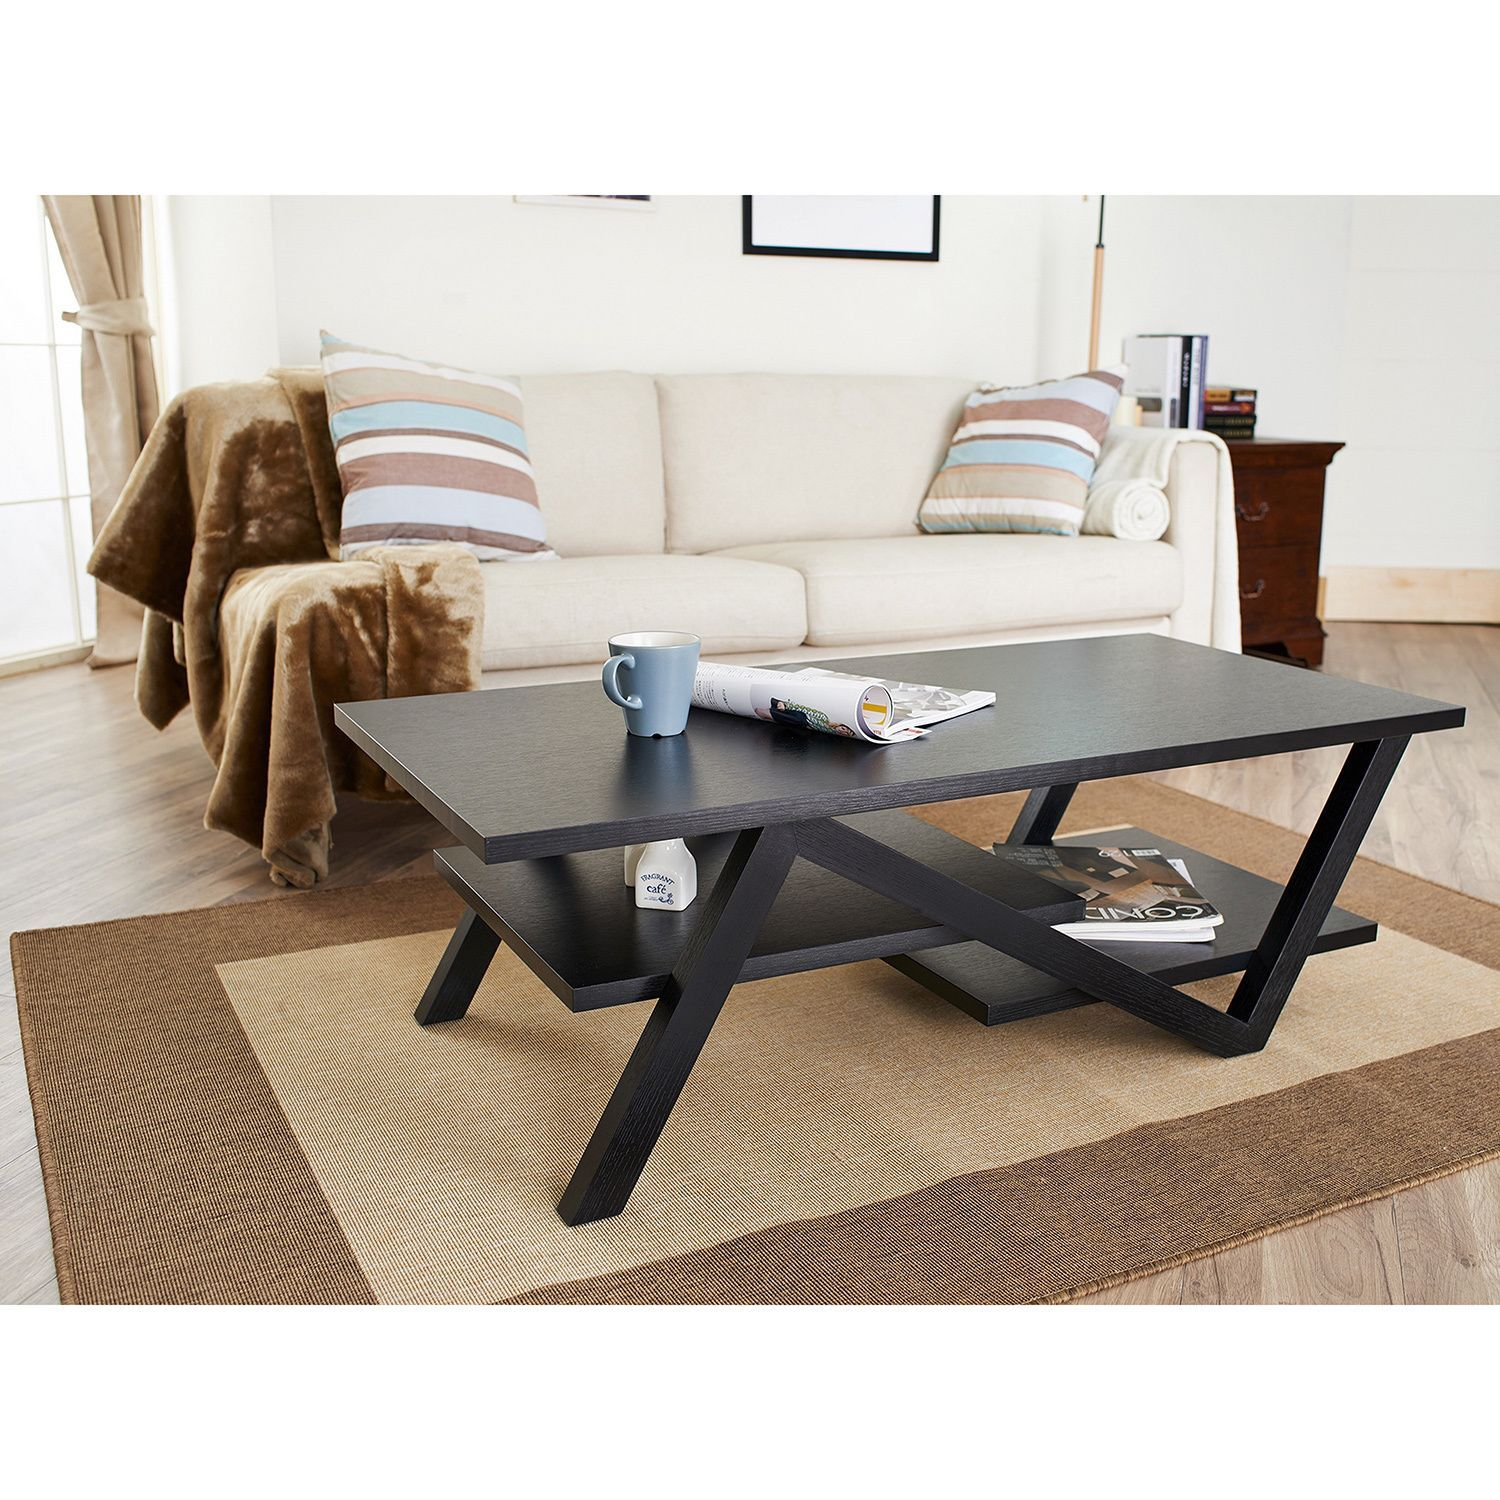 Our Best Living Room Furniture Deals Coffee Table Coffee Table Furniture Furniture [ 1500 x 1500 Pixel ]